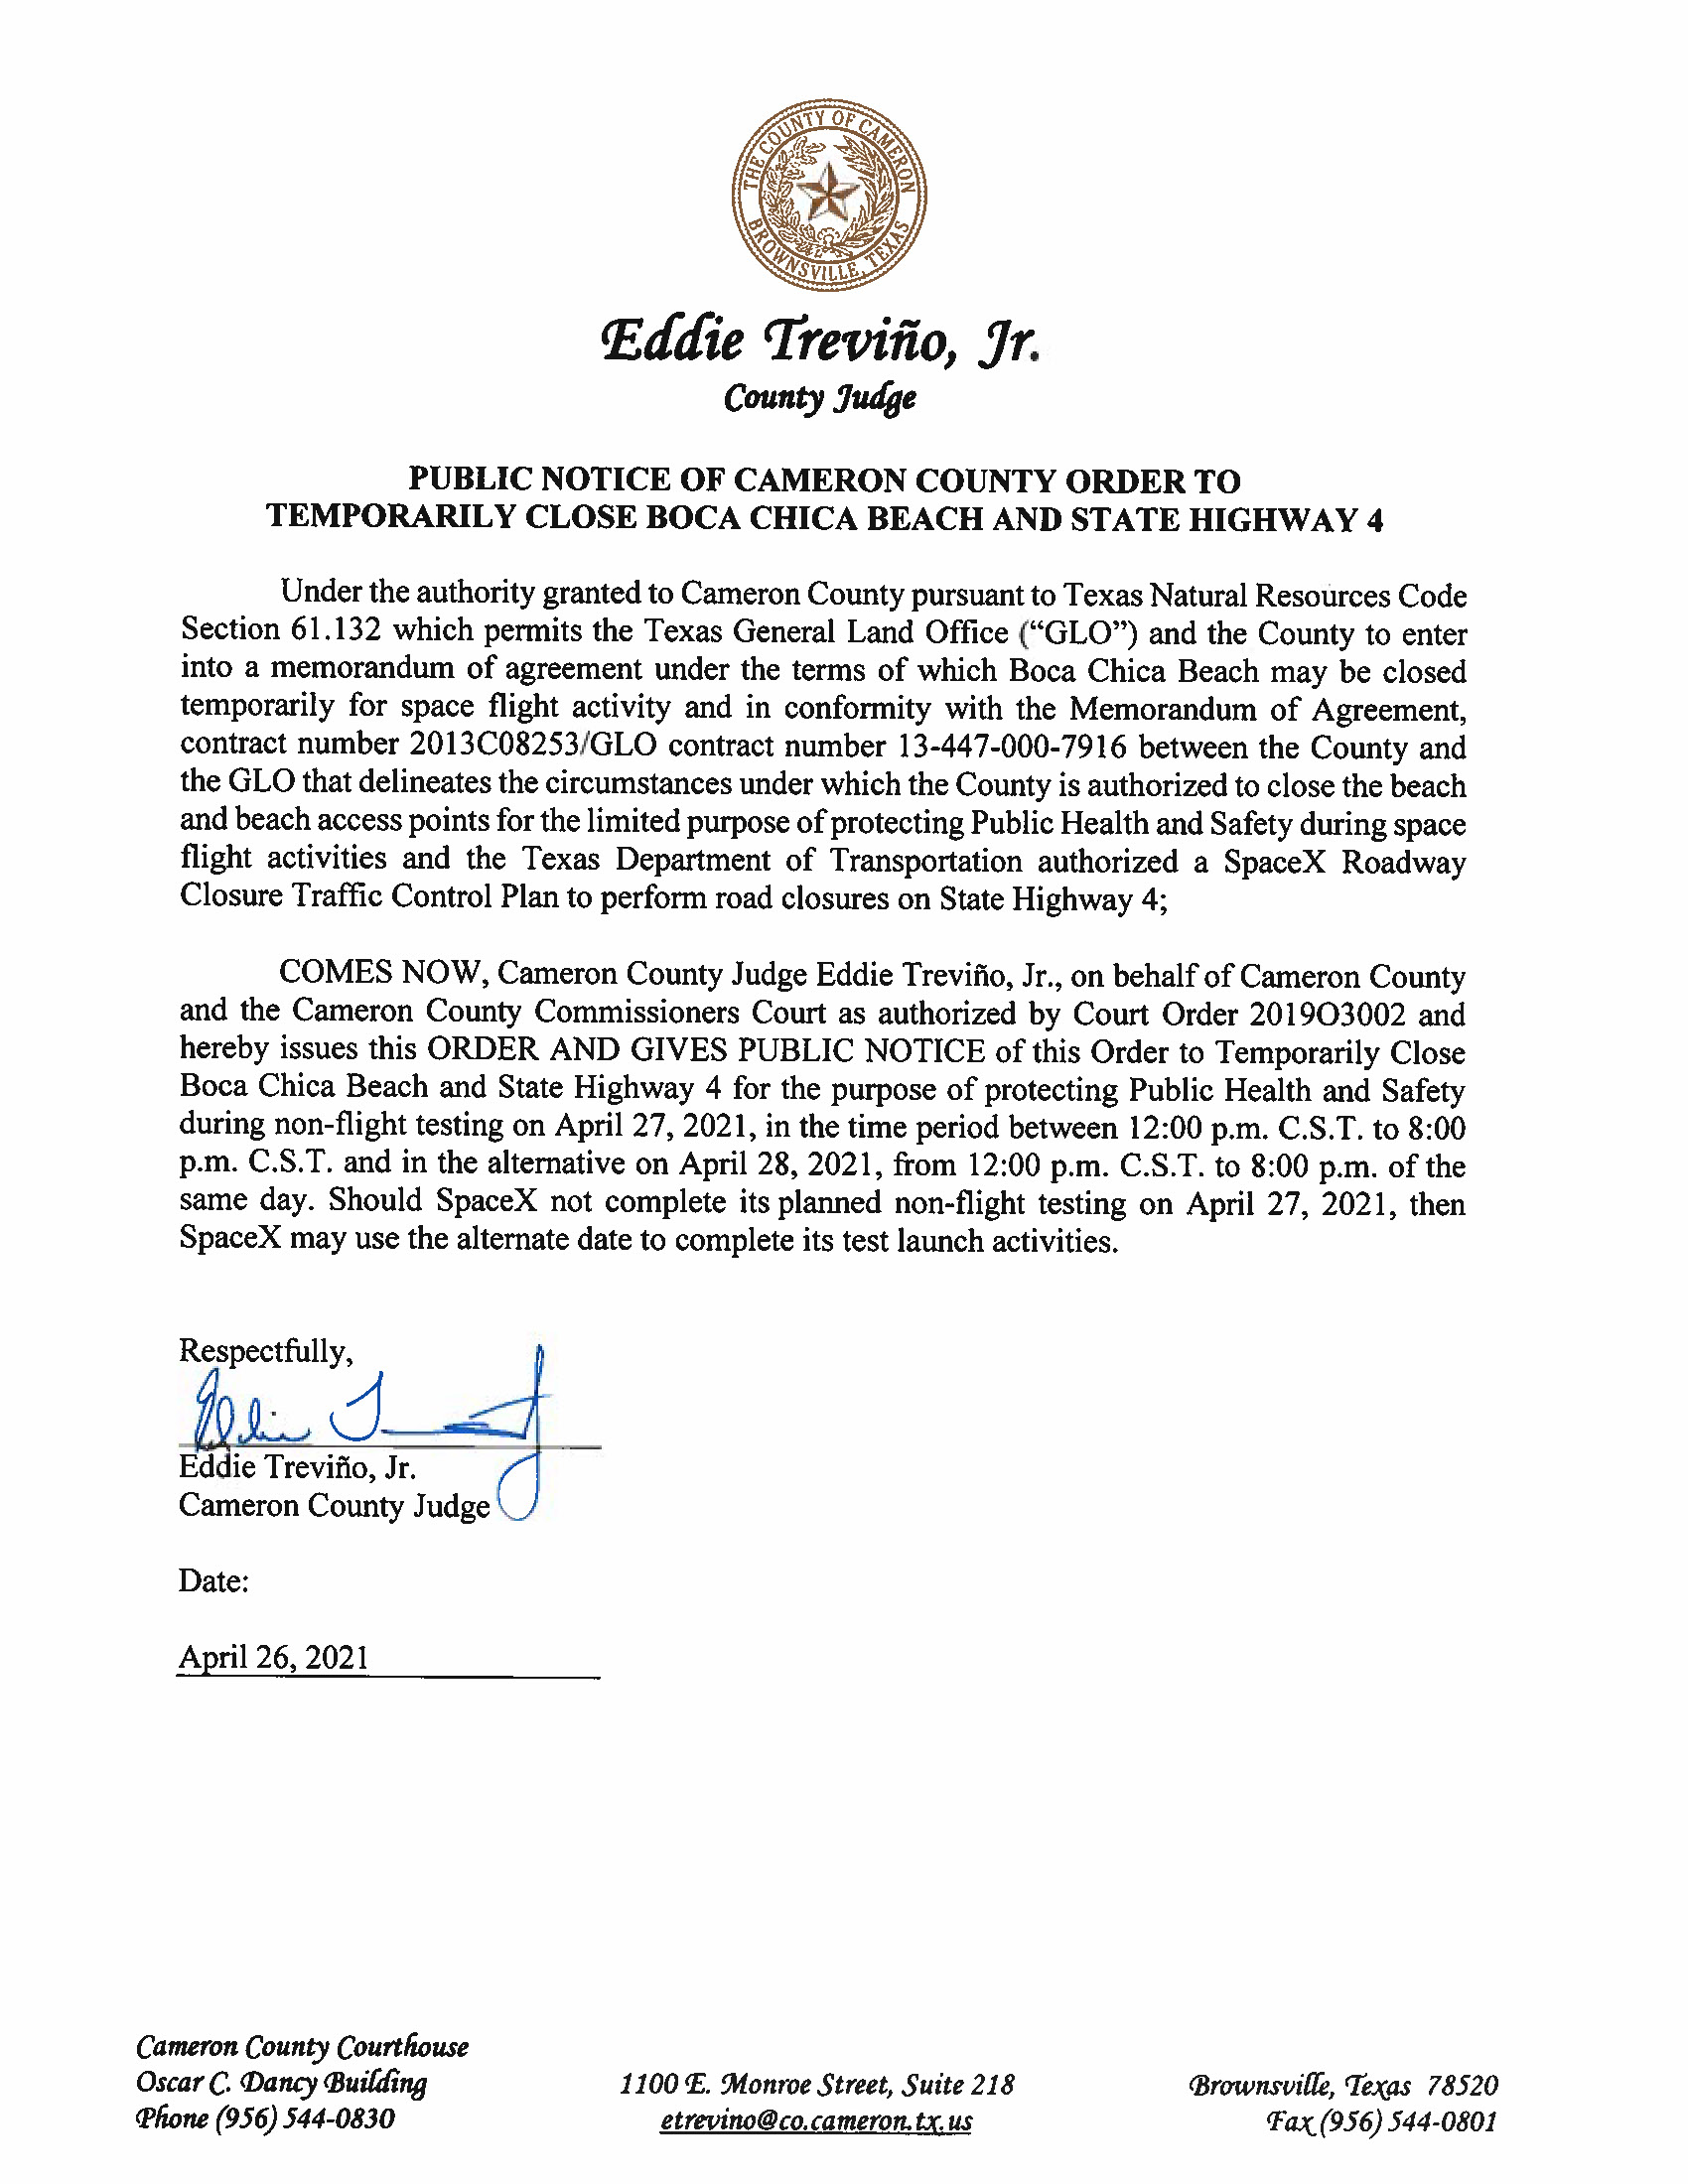 PUBLIC NOTICE OF CAMERON COUNTY ORDER TO TEMP. BEACH CLOSURE AND HWY.NON FLIGHT.04.27.2021